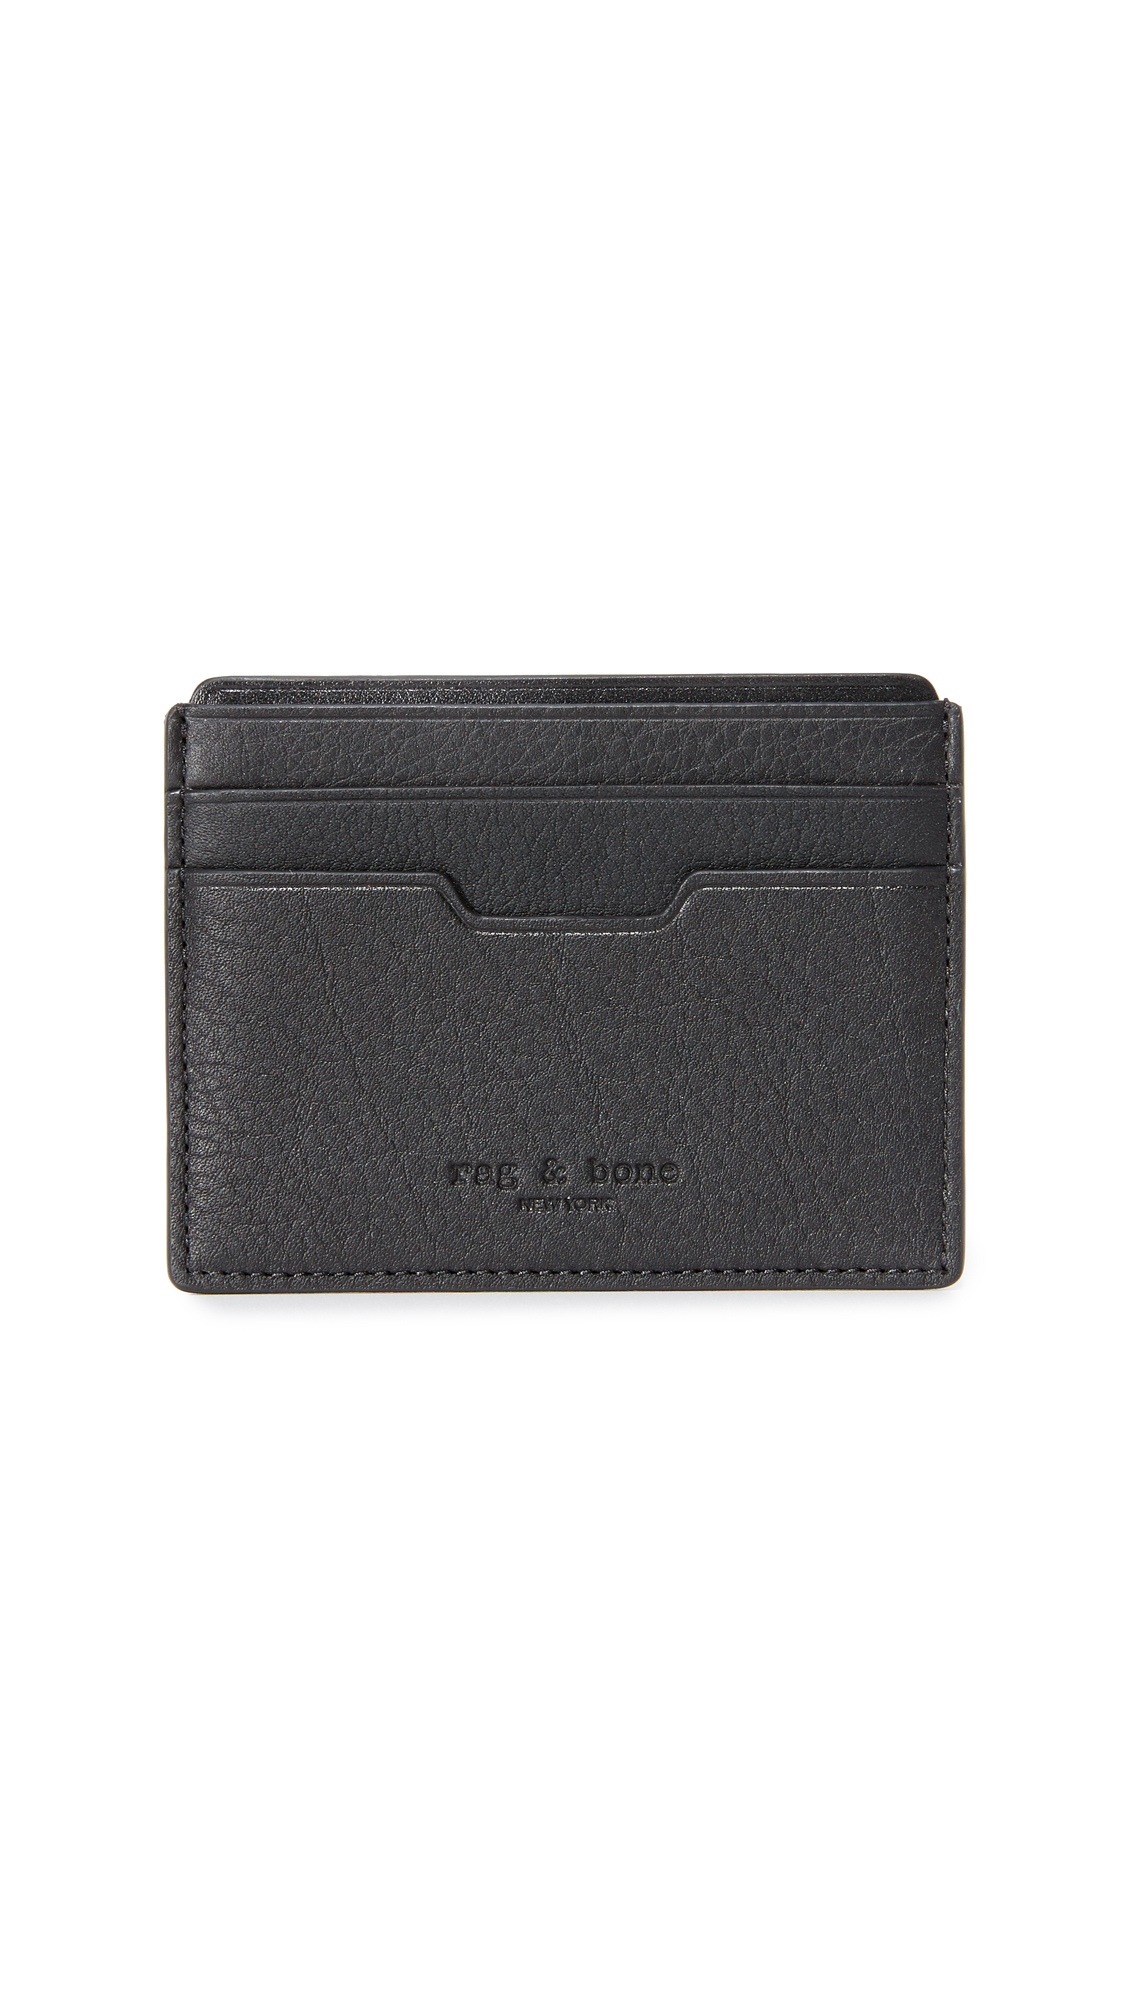 Rag & Bone Card Case - Black